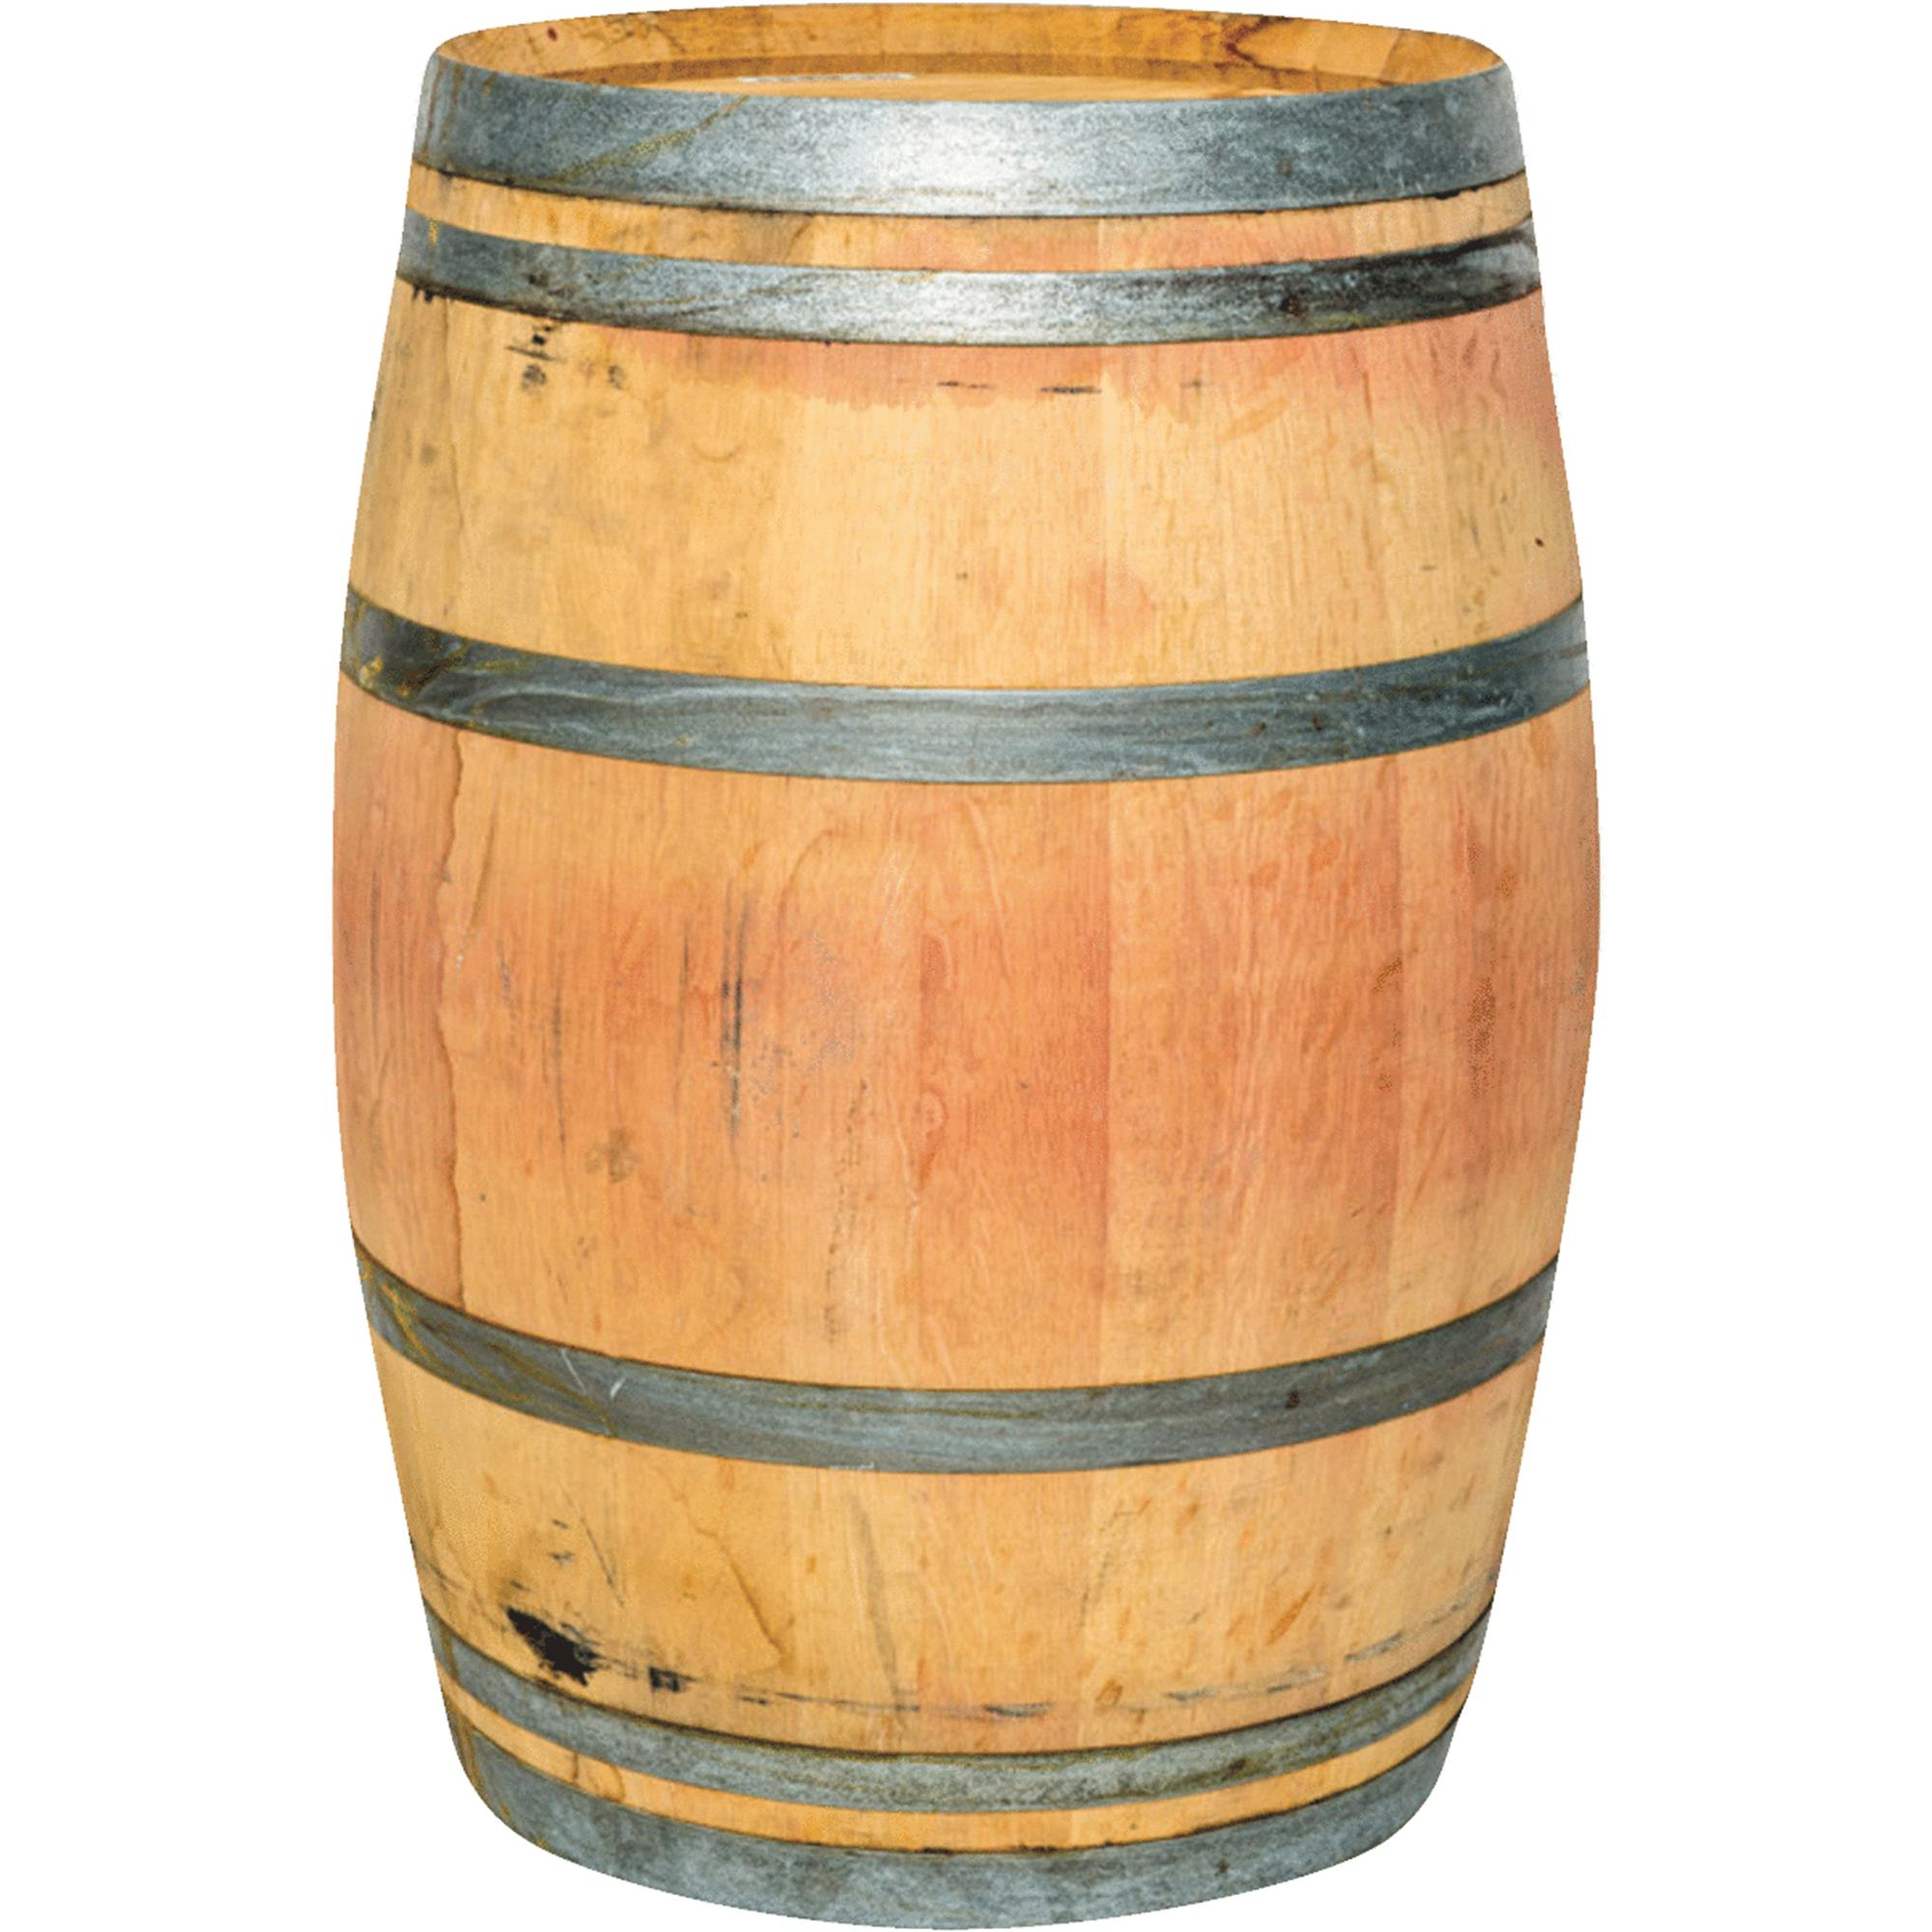 Whole Oak Wine Barrel Empty Decorative Planter 59 Gallon Wood